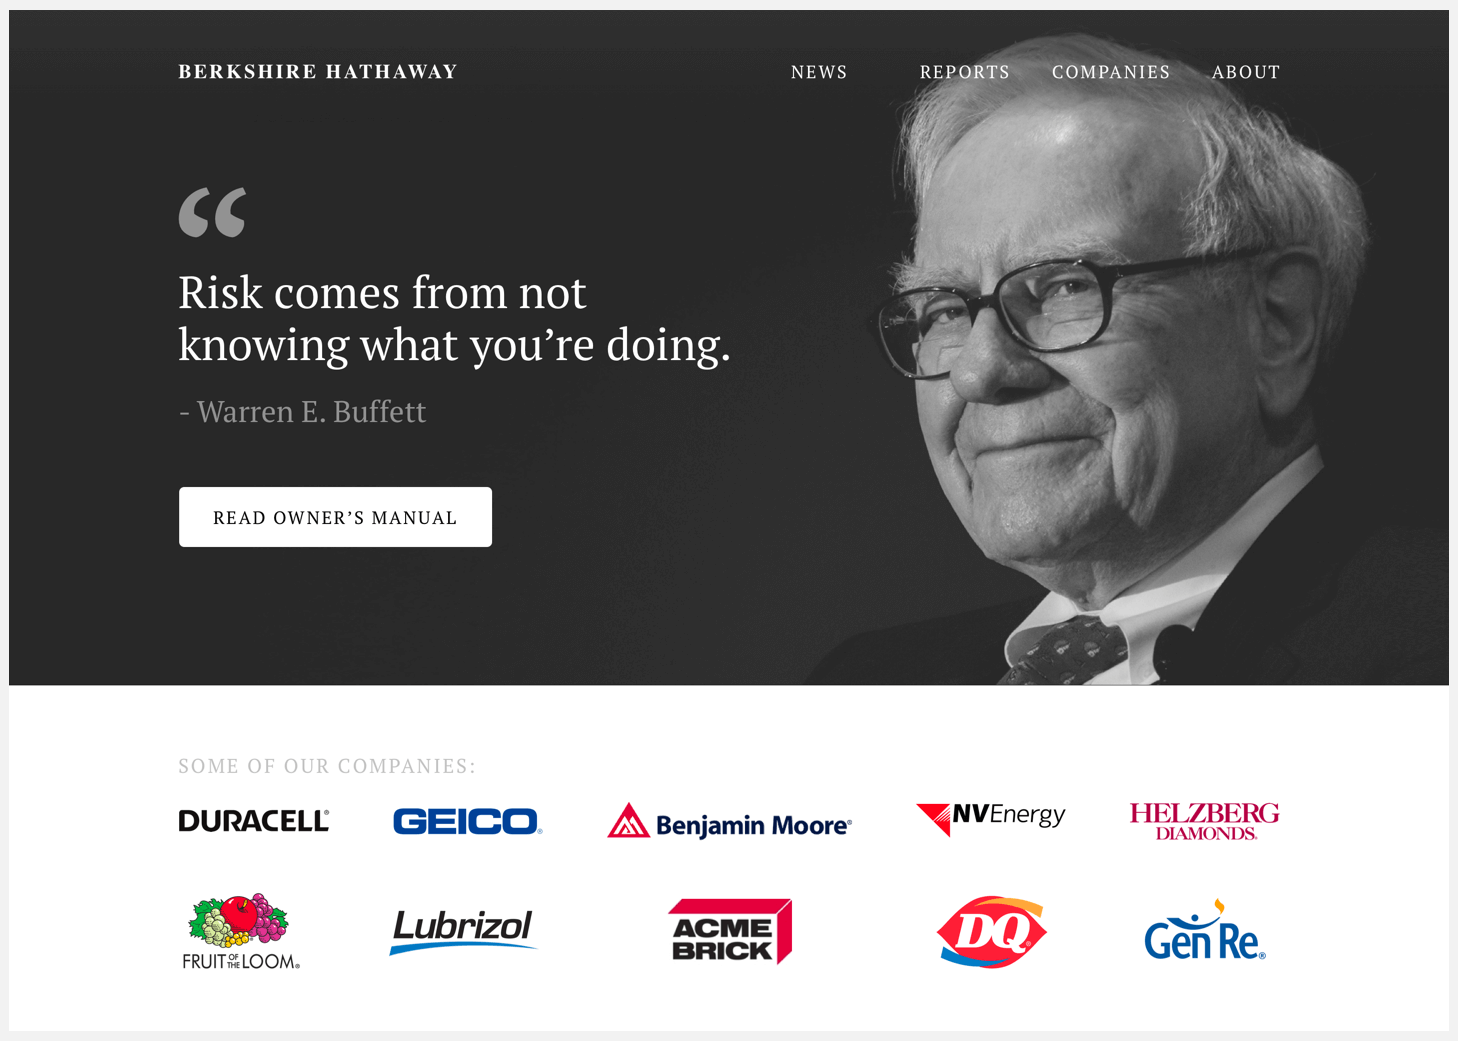 Redesigned Header of Berkshire Hathaway's website.